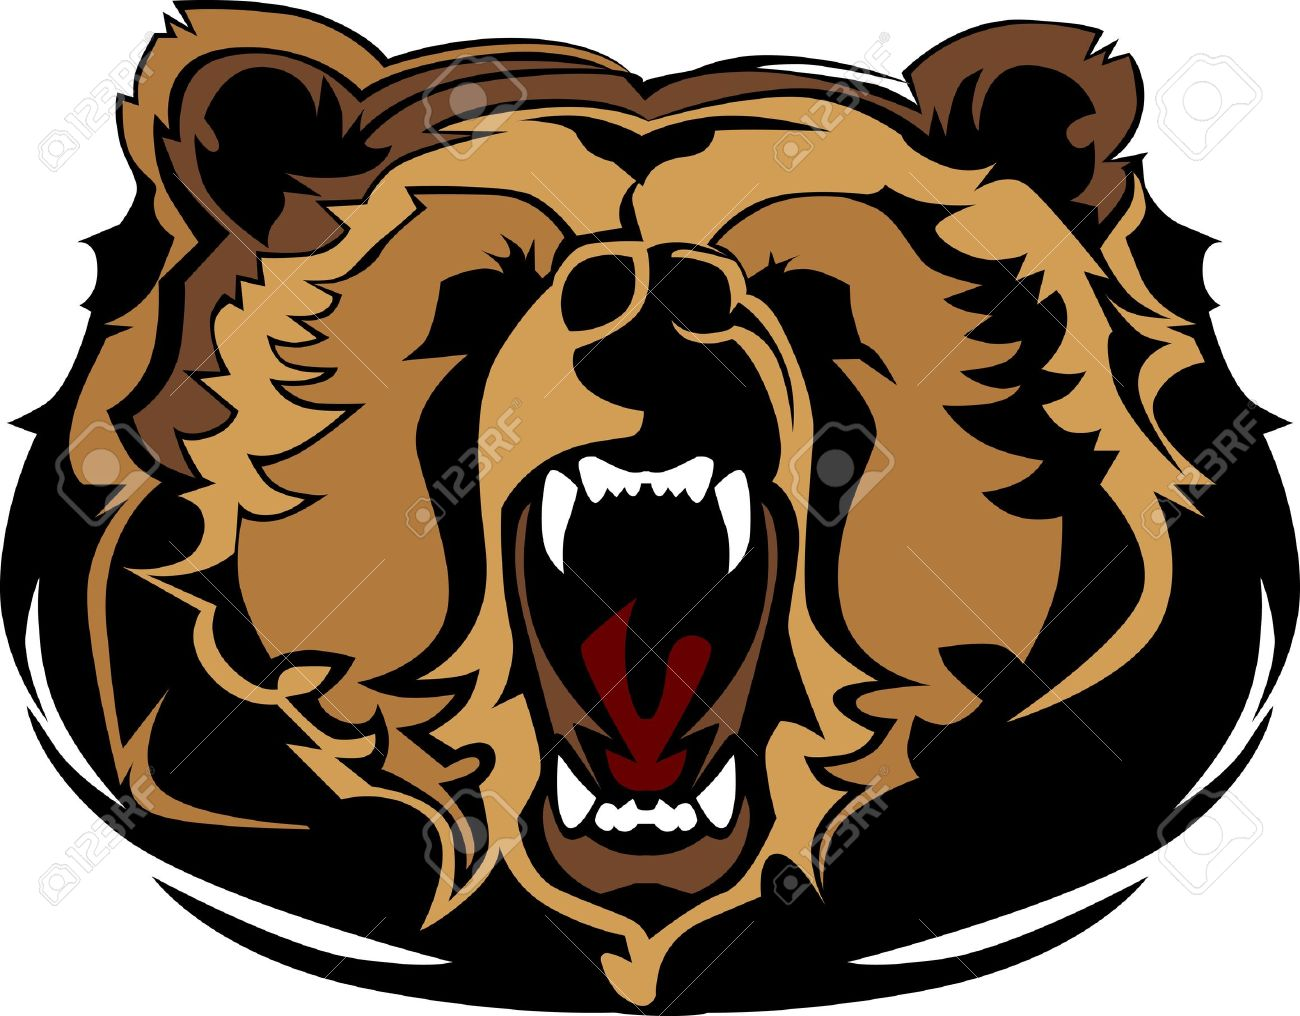 Grizzly clipart #13, Download drawings